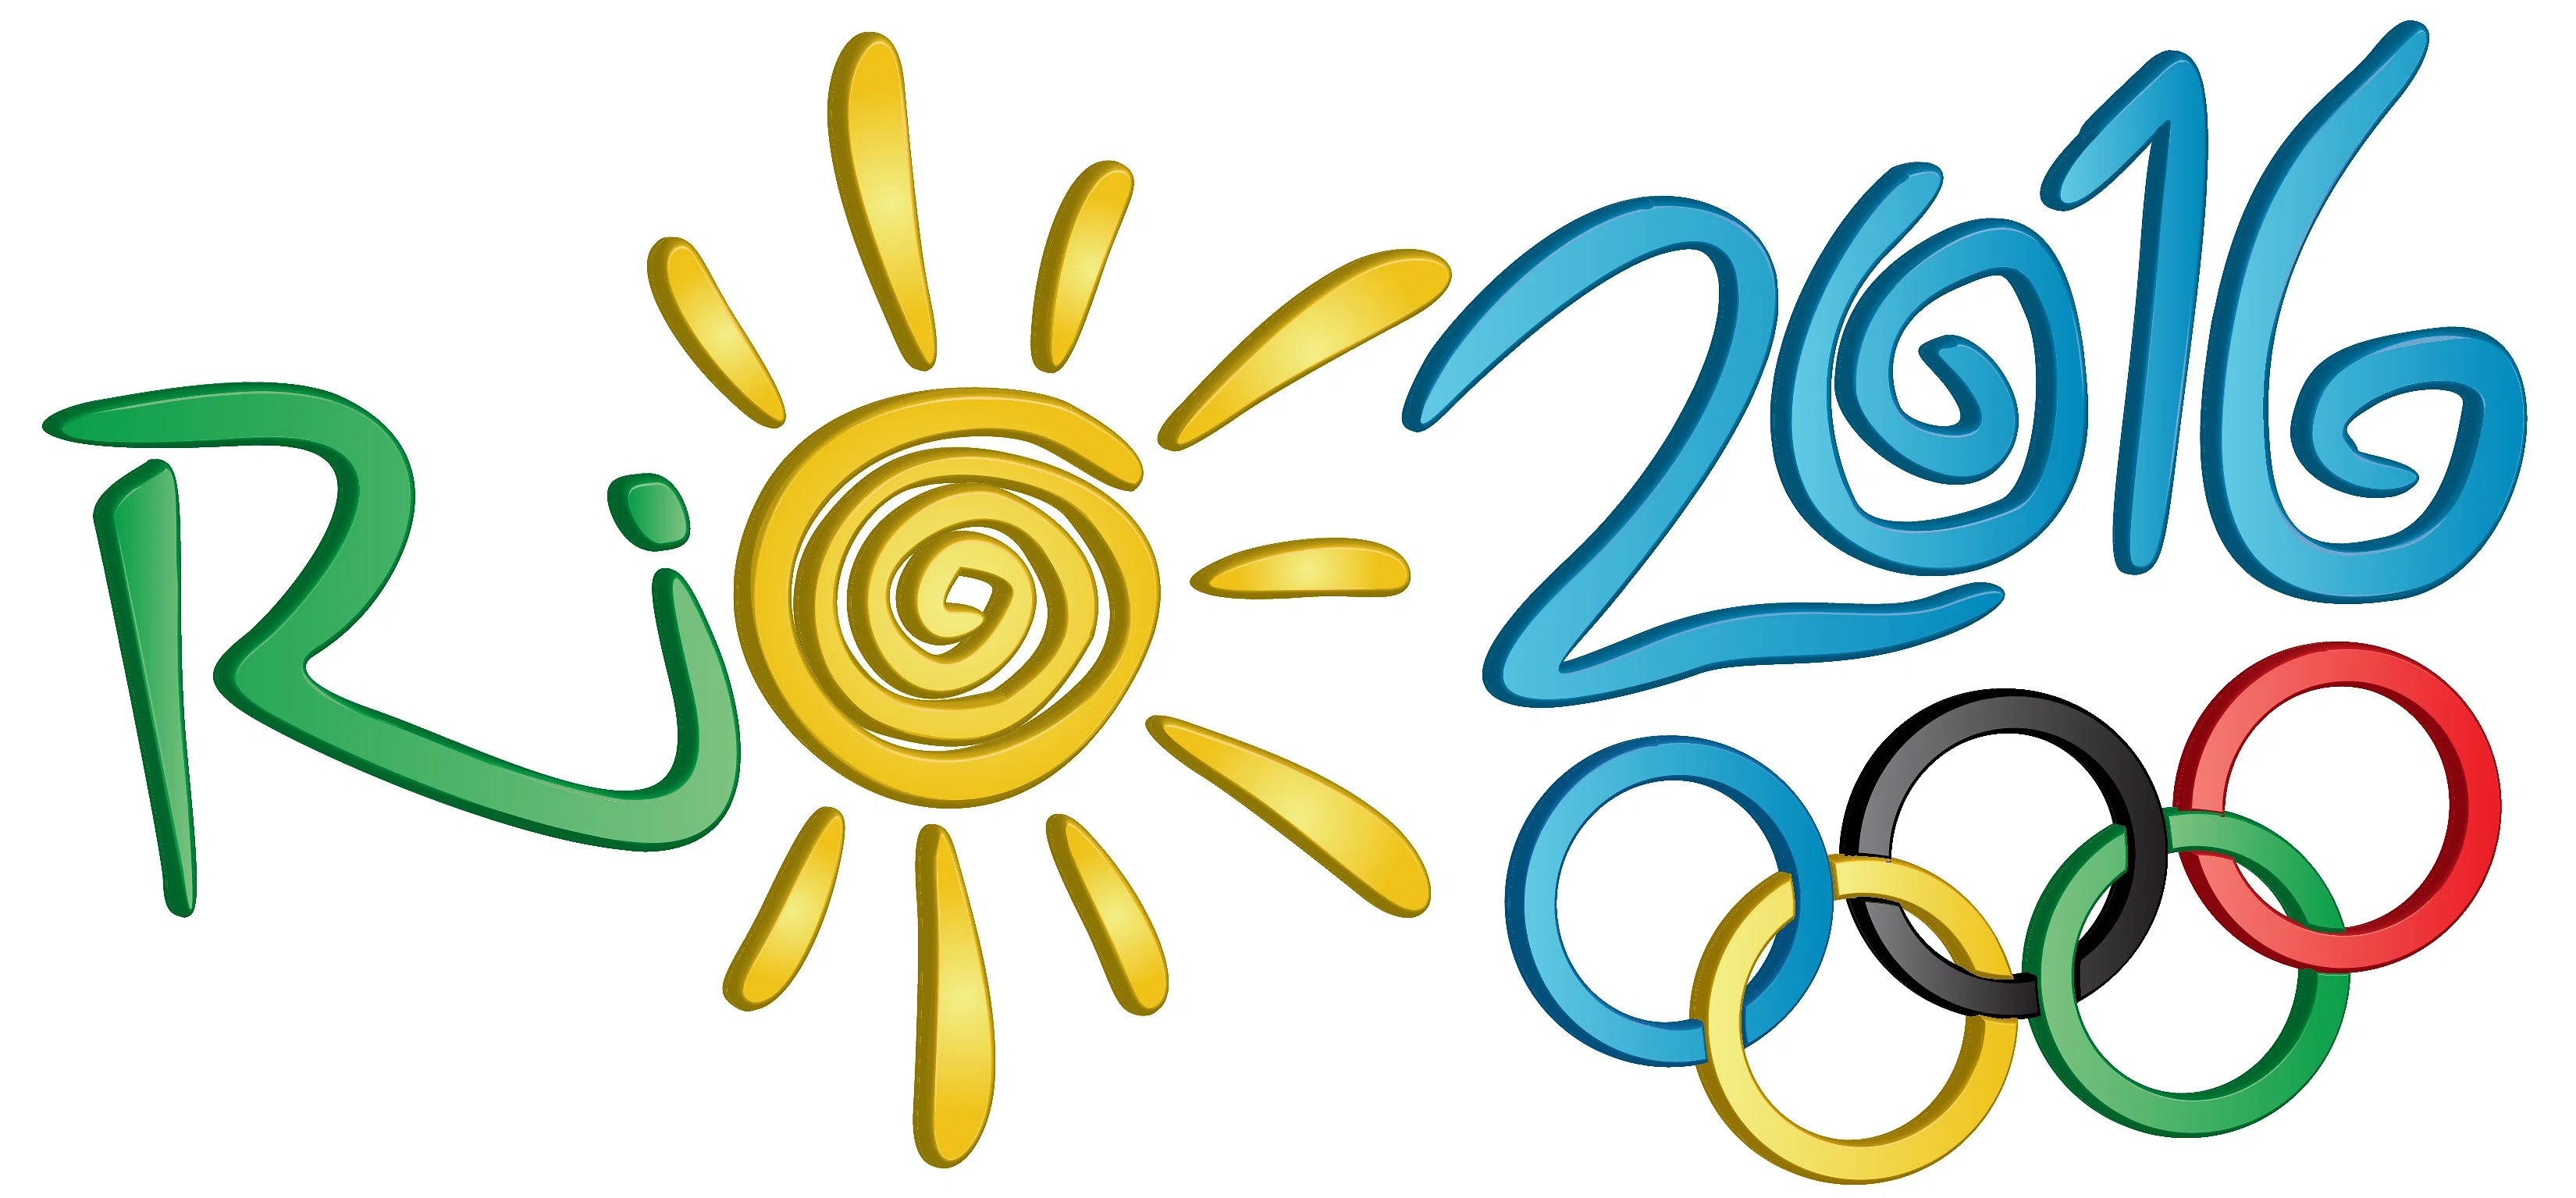 Rio Olympic Today Brazil 2016 Olympics Preparations News Jul 16 2014